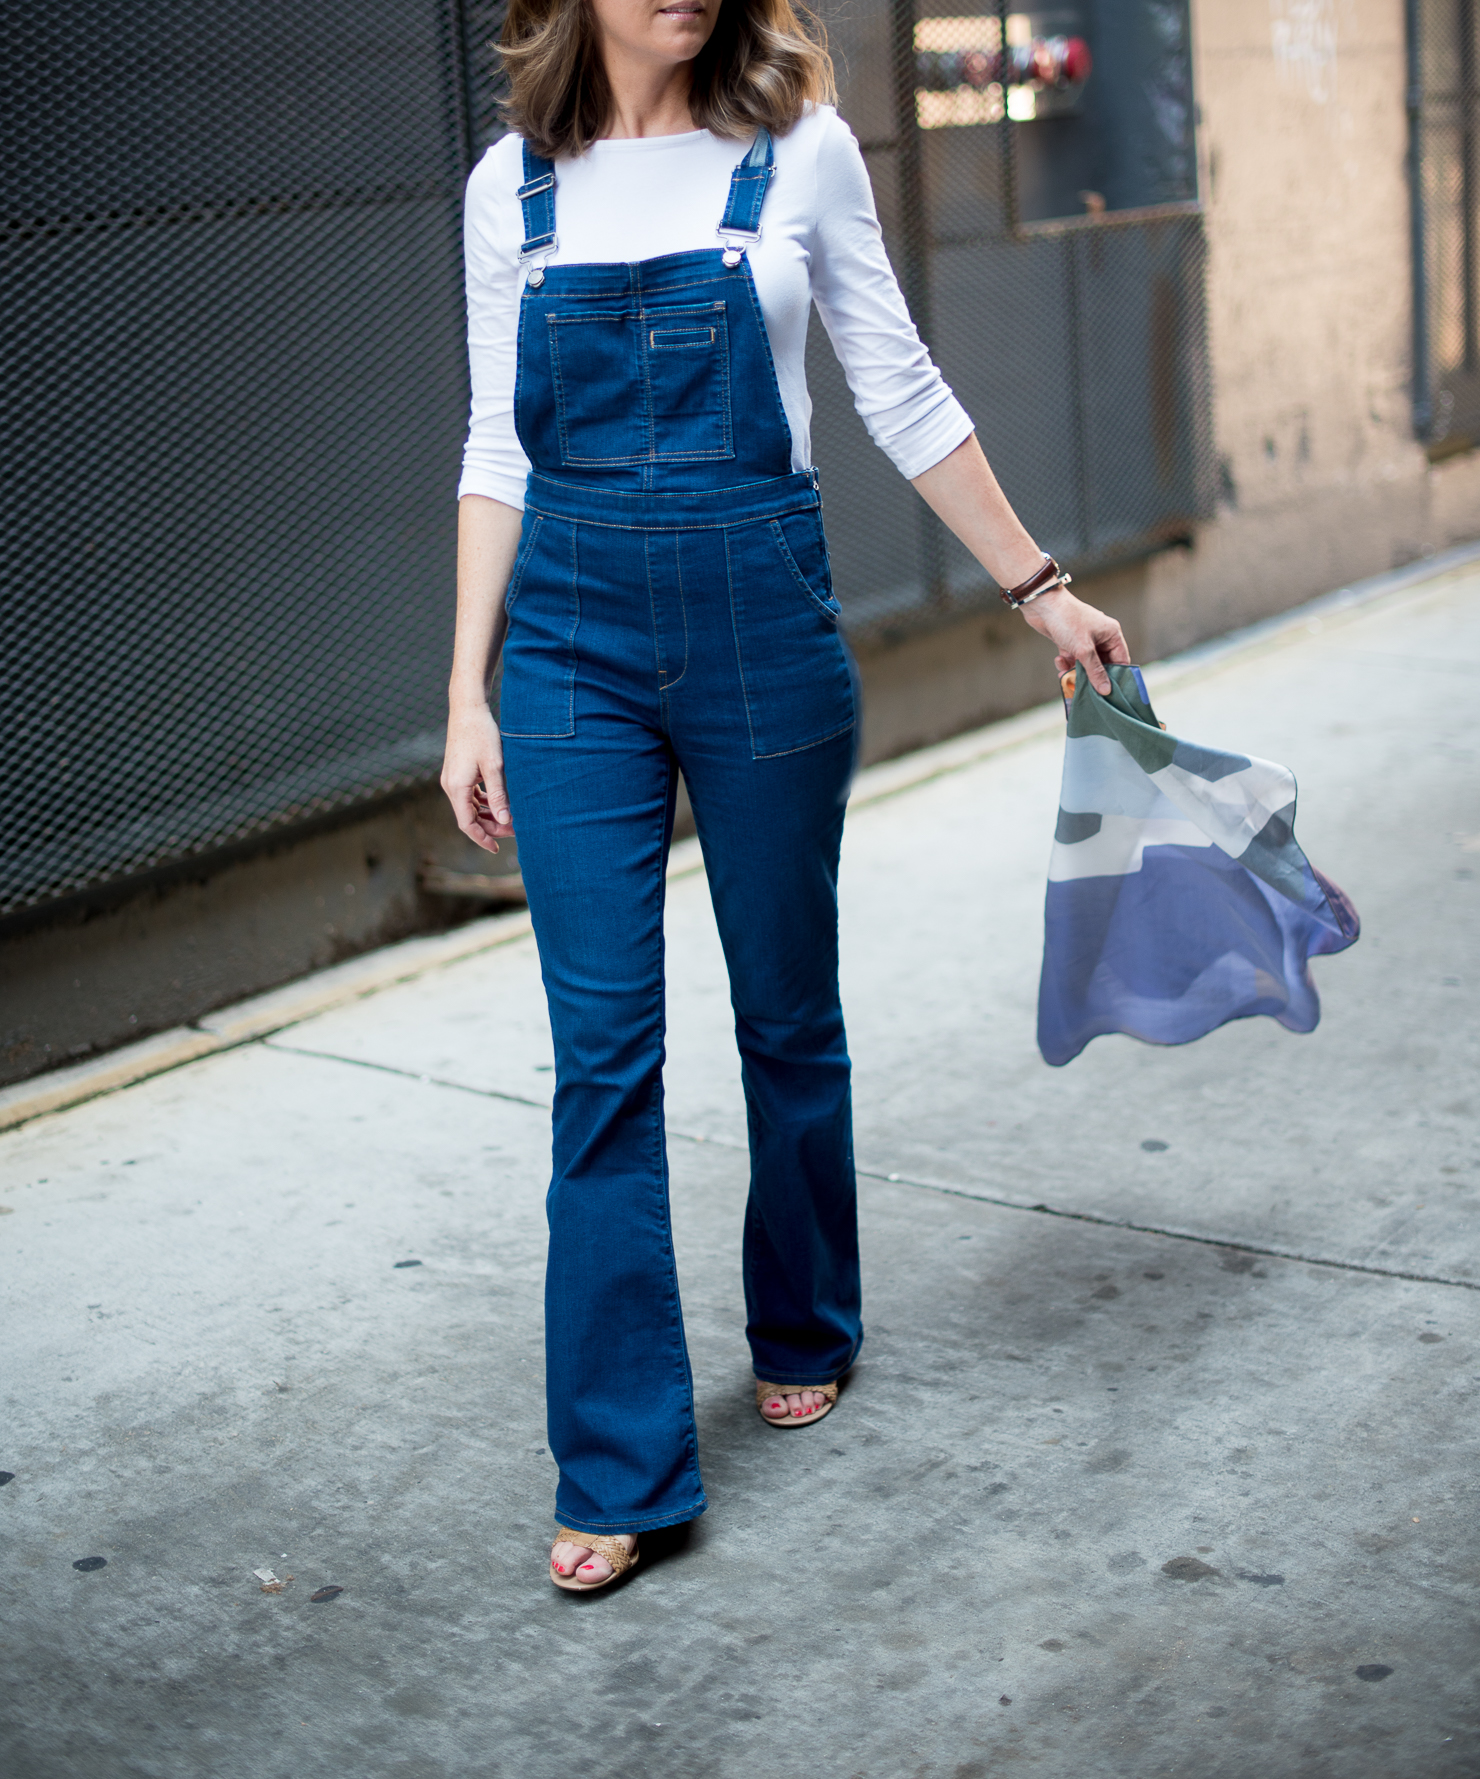 gap-flared-denim-overalls-silk-scarf-wishes-and-reality-chicago-fashion-blogger-18